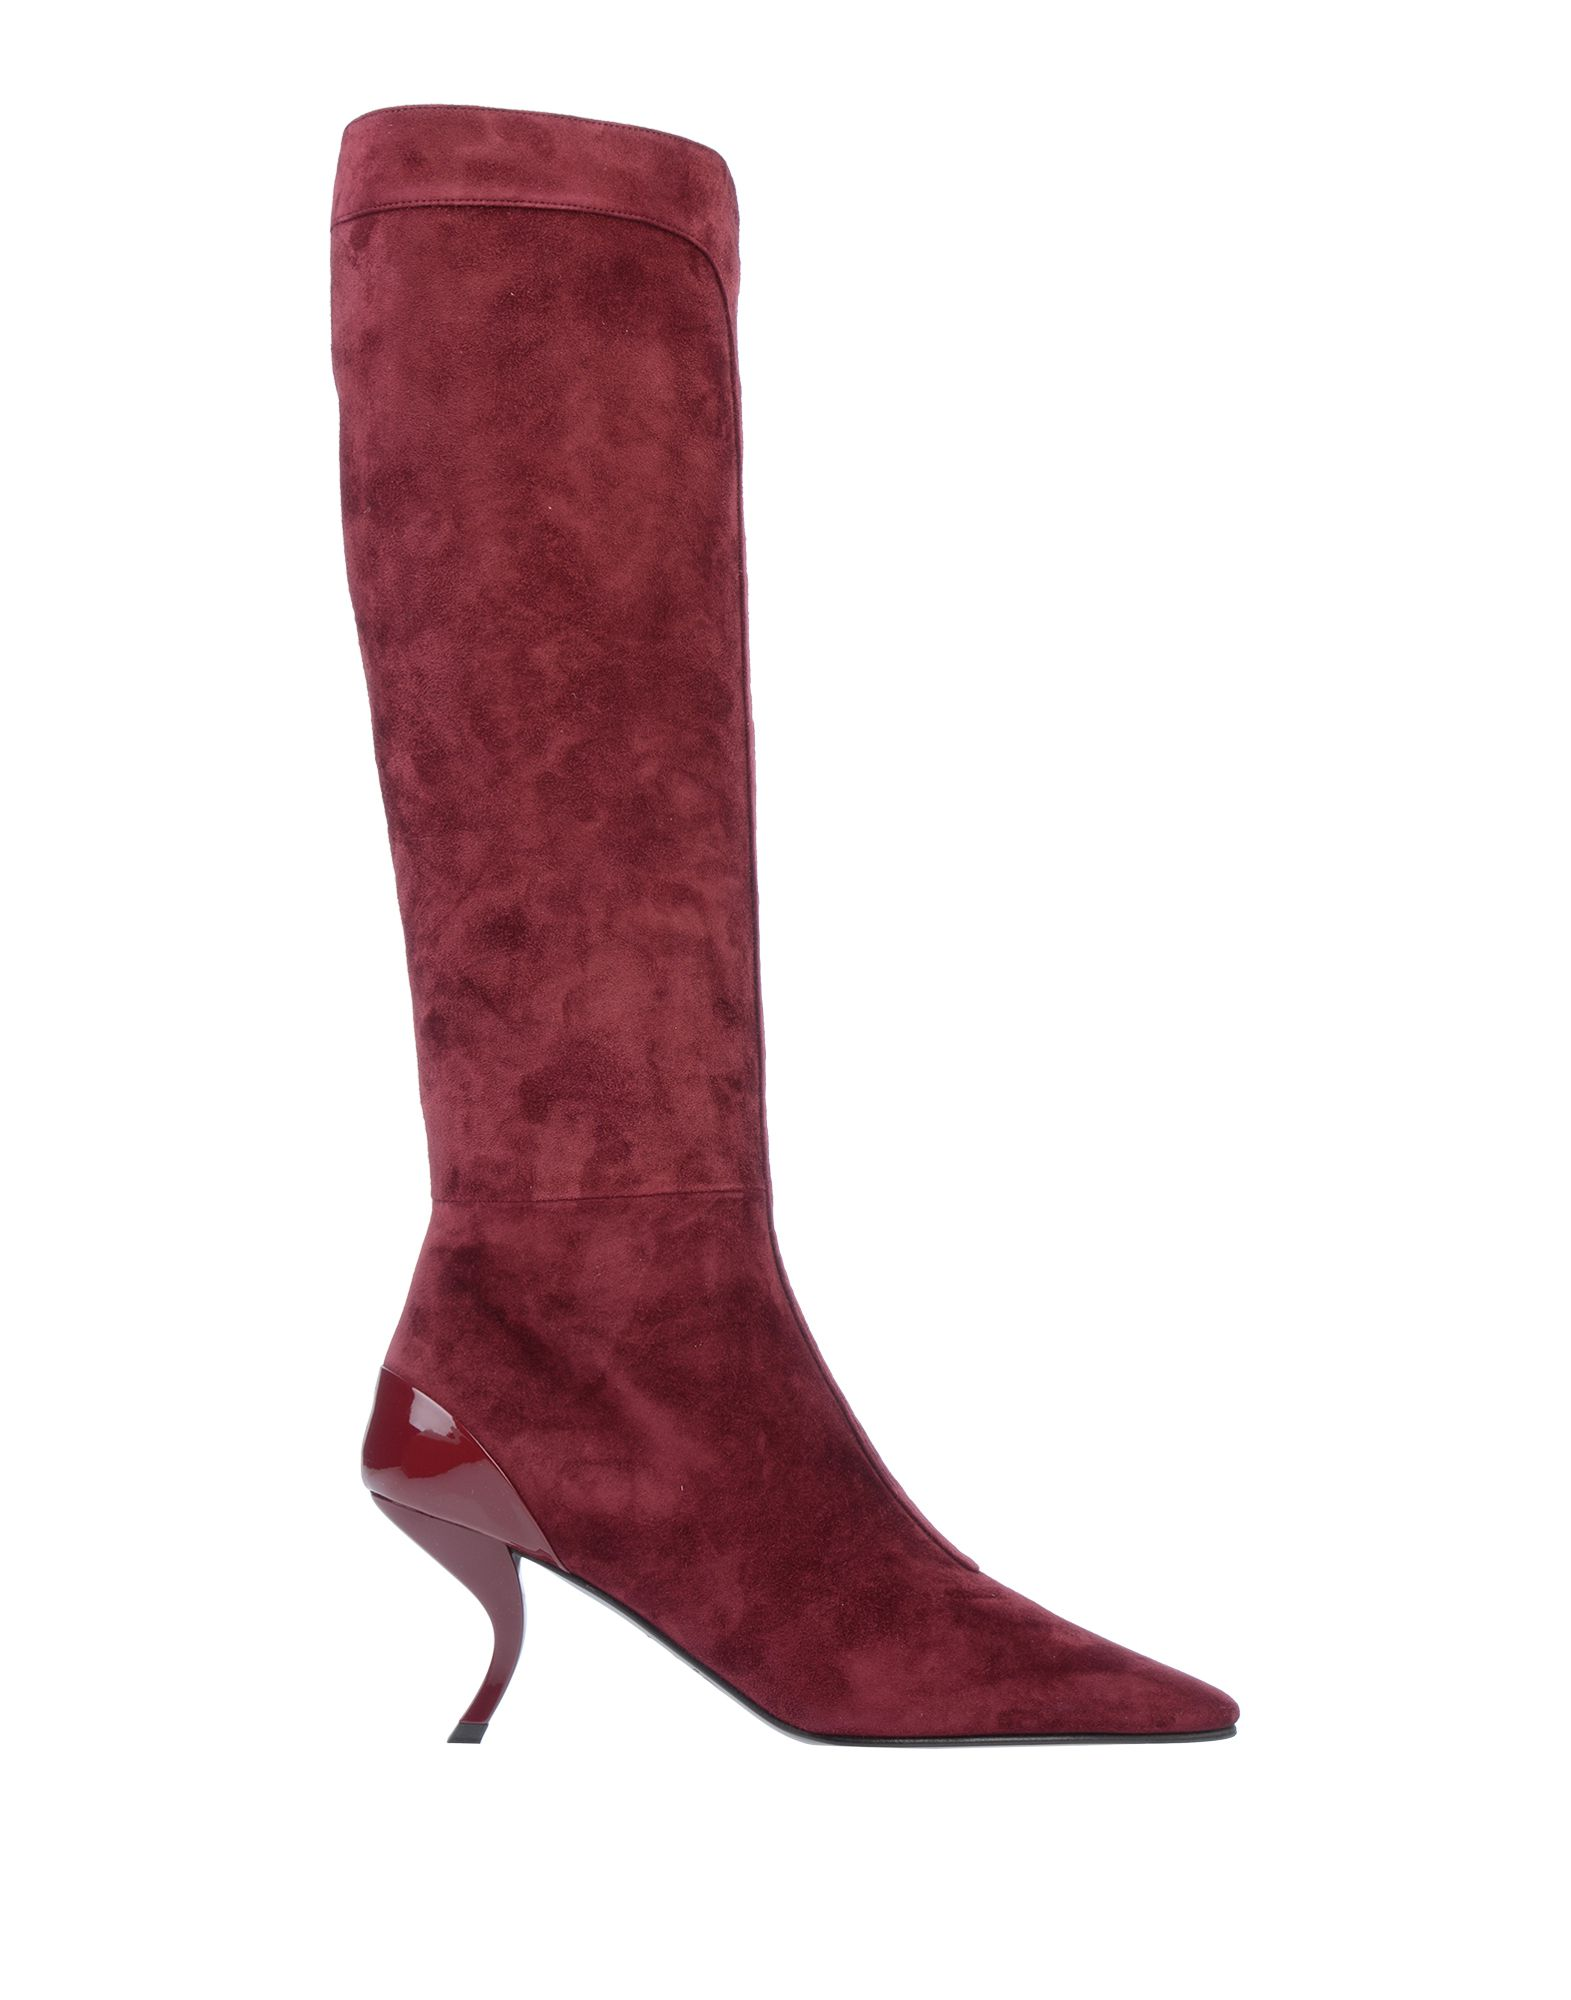 ROGER VIVIER Boots. leather, suede effect, basic solid color, zip, narrow toeline, sculpted heel, leather lining, leather sole, no appliqués, contains non-textile parts of animal origin. Soft Leather